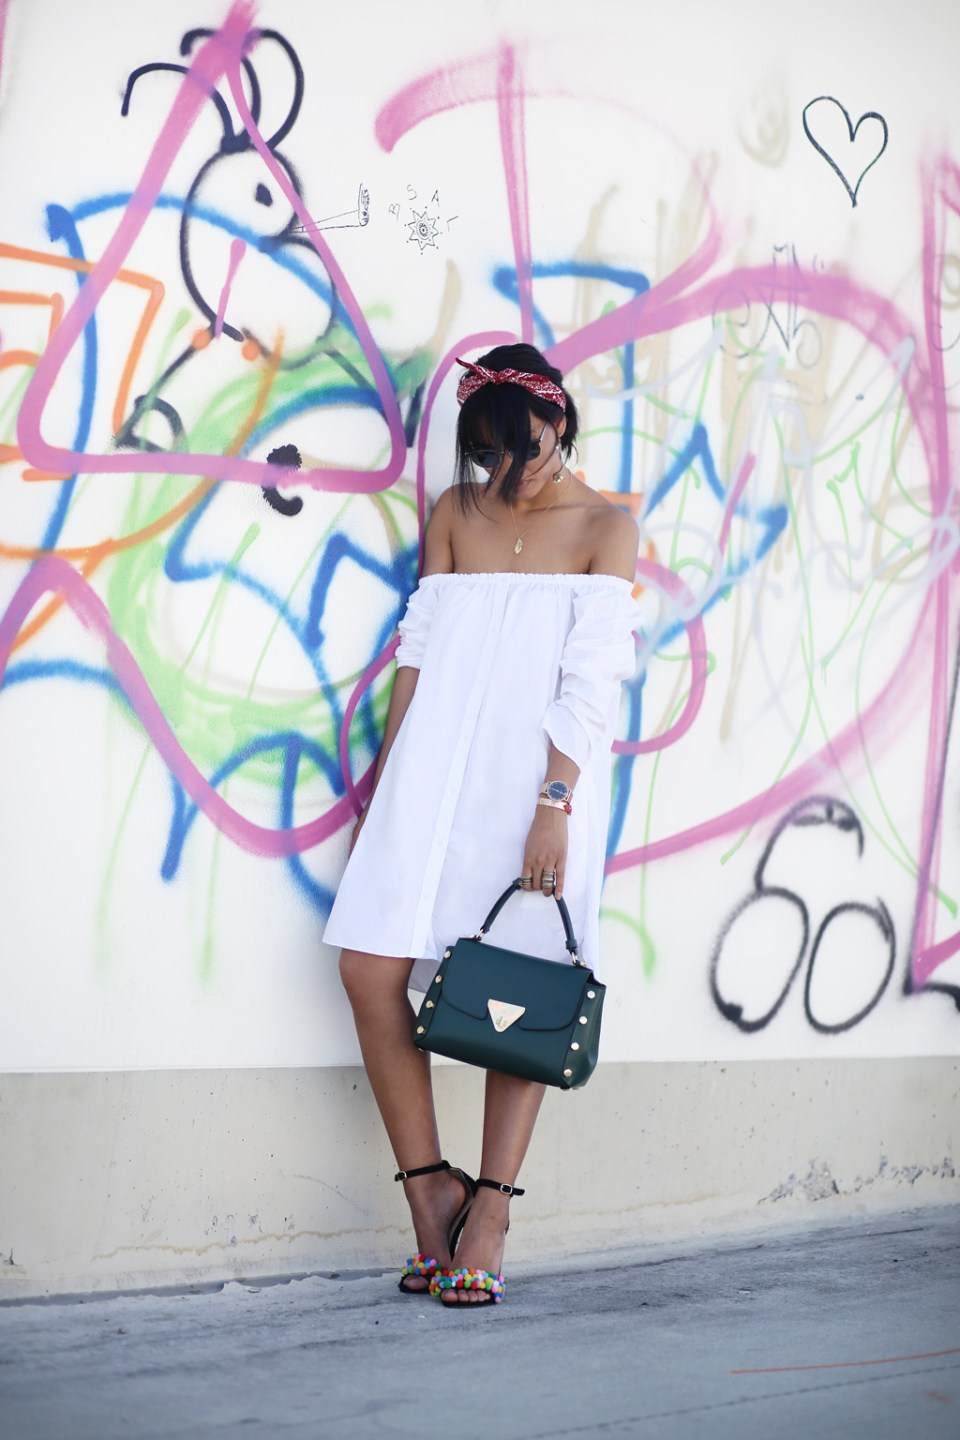 thefashionanarchy_blogger_fashionblog_modeblog_styleblog_monrob_pompons_offshoulder_kleid_muenchen_munich_sommer_outfit_look_5